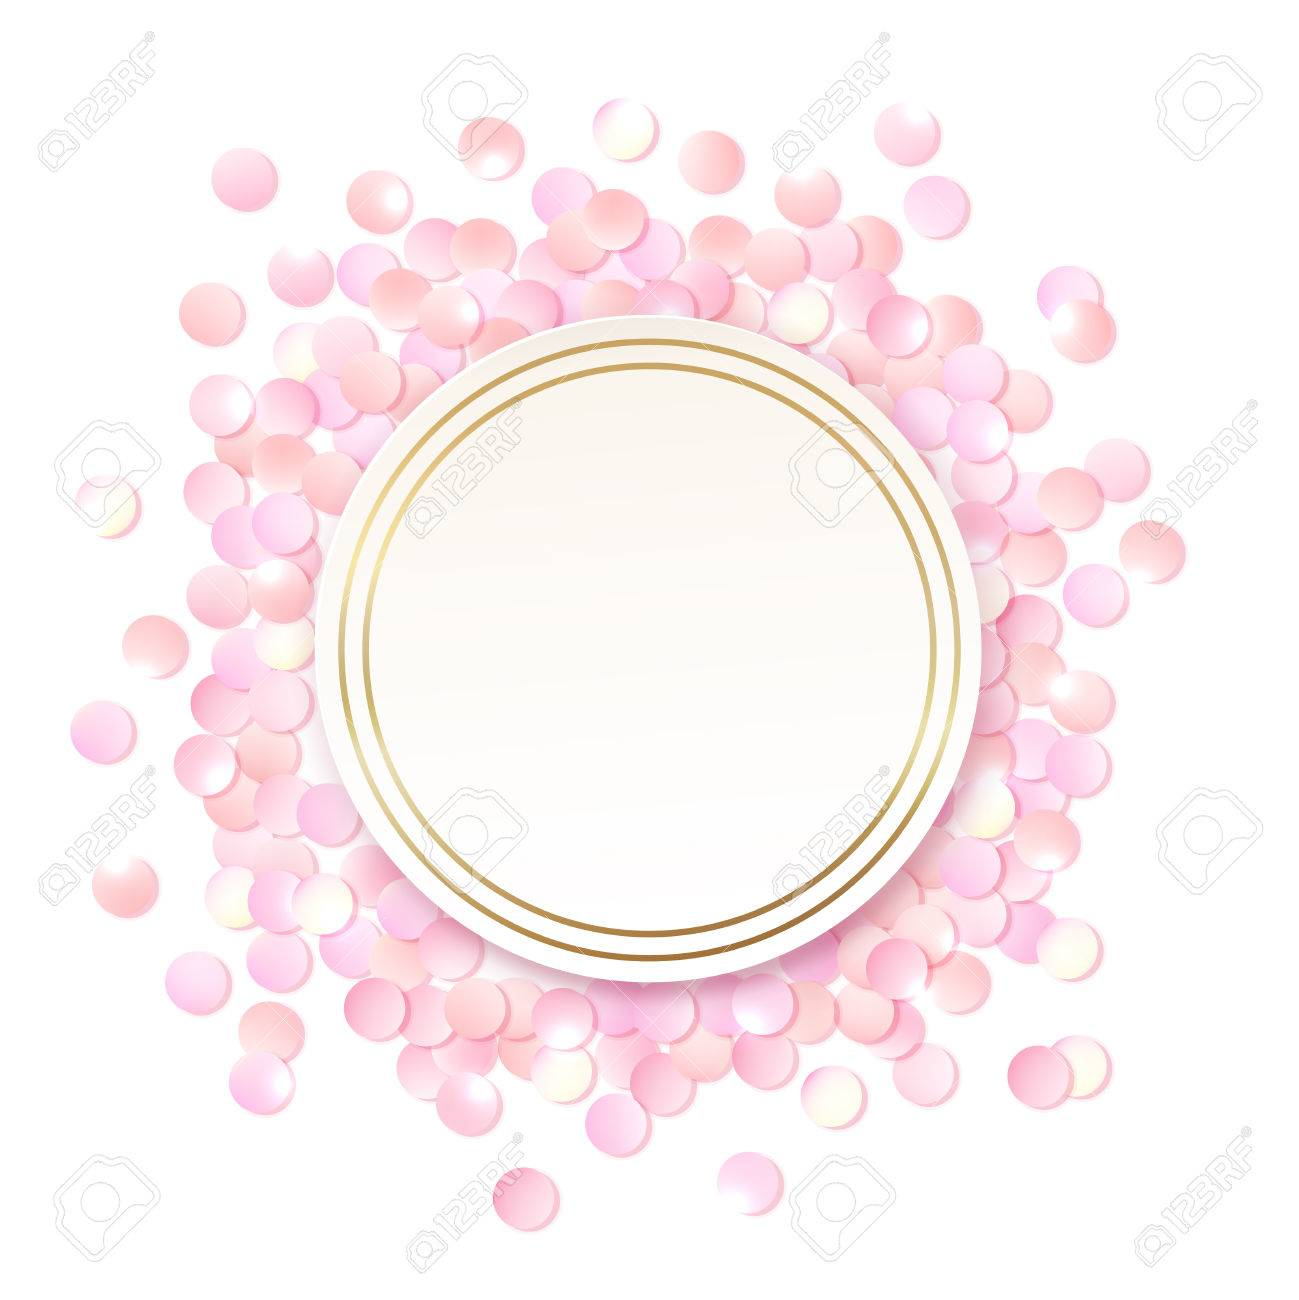 Pink realistic round confetti frame design template for gift pink realistic round confetti frame design template for gift certificate voucher ad yadclub Images